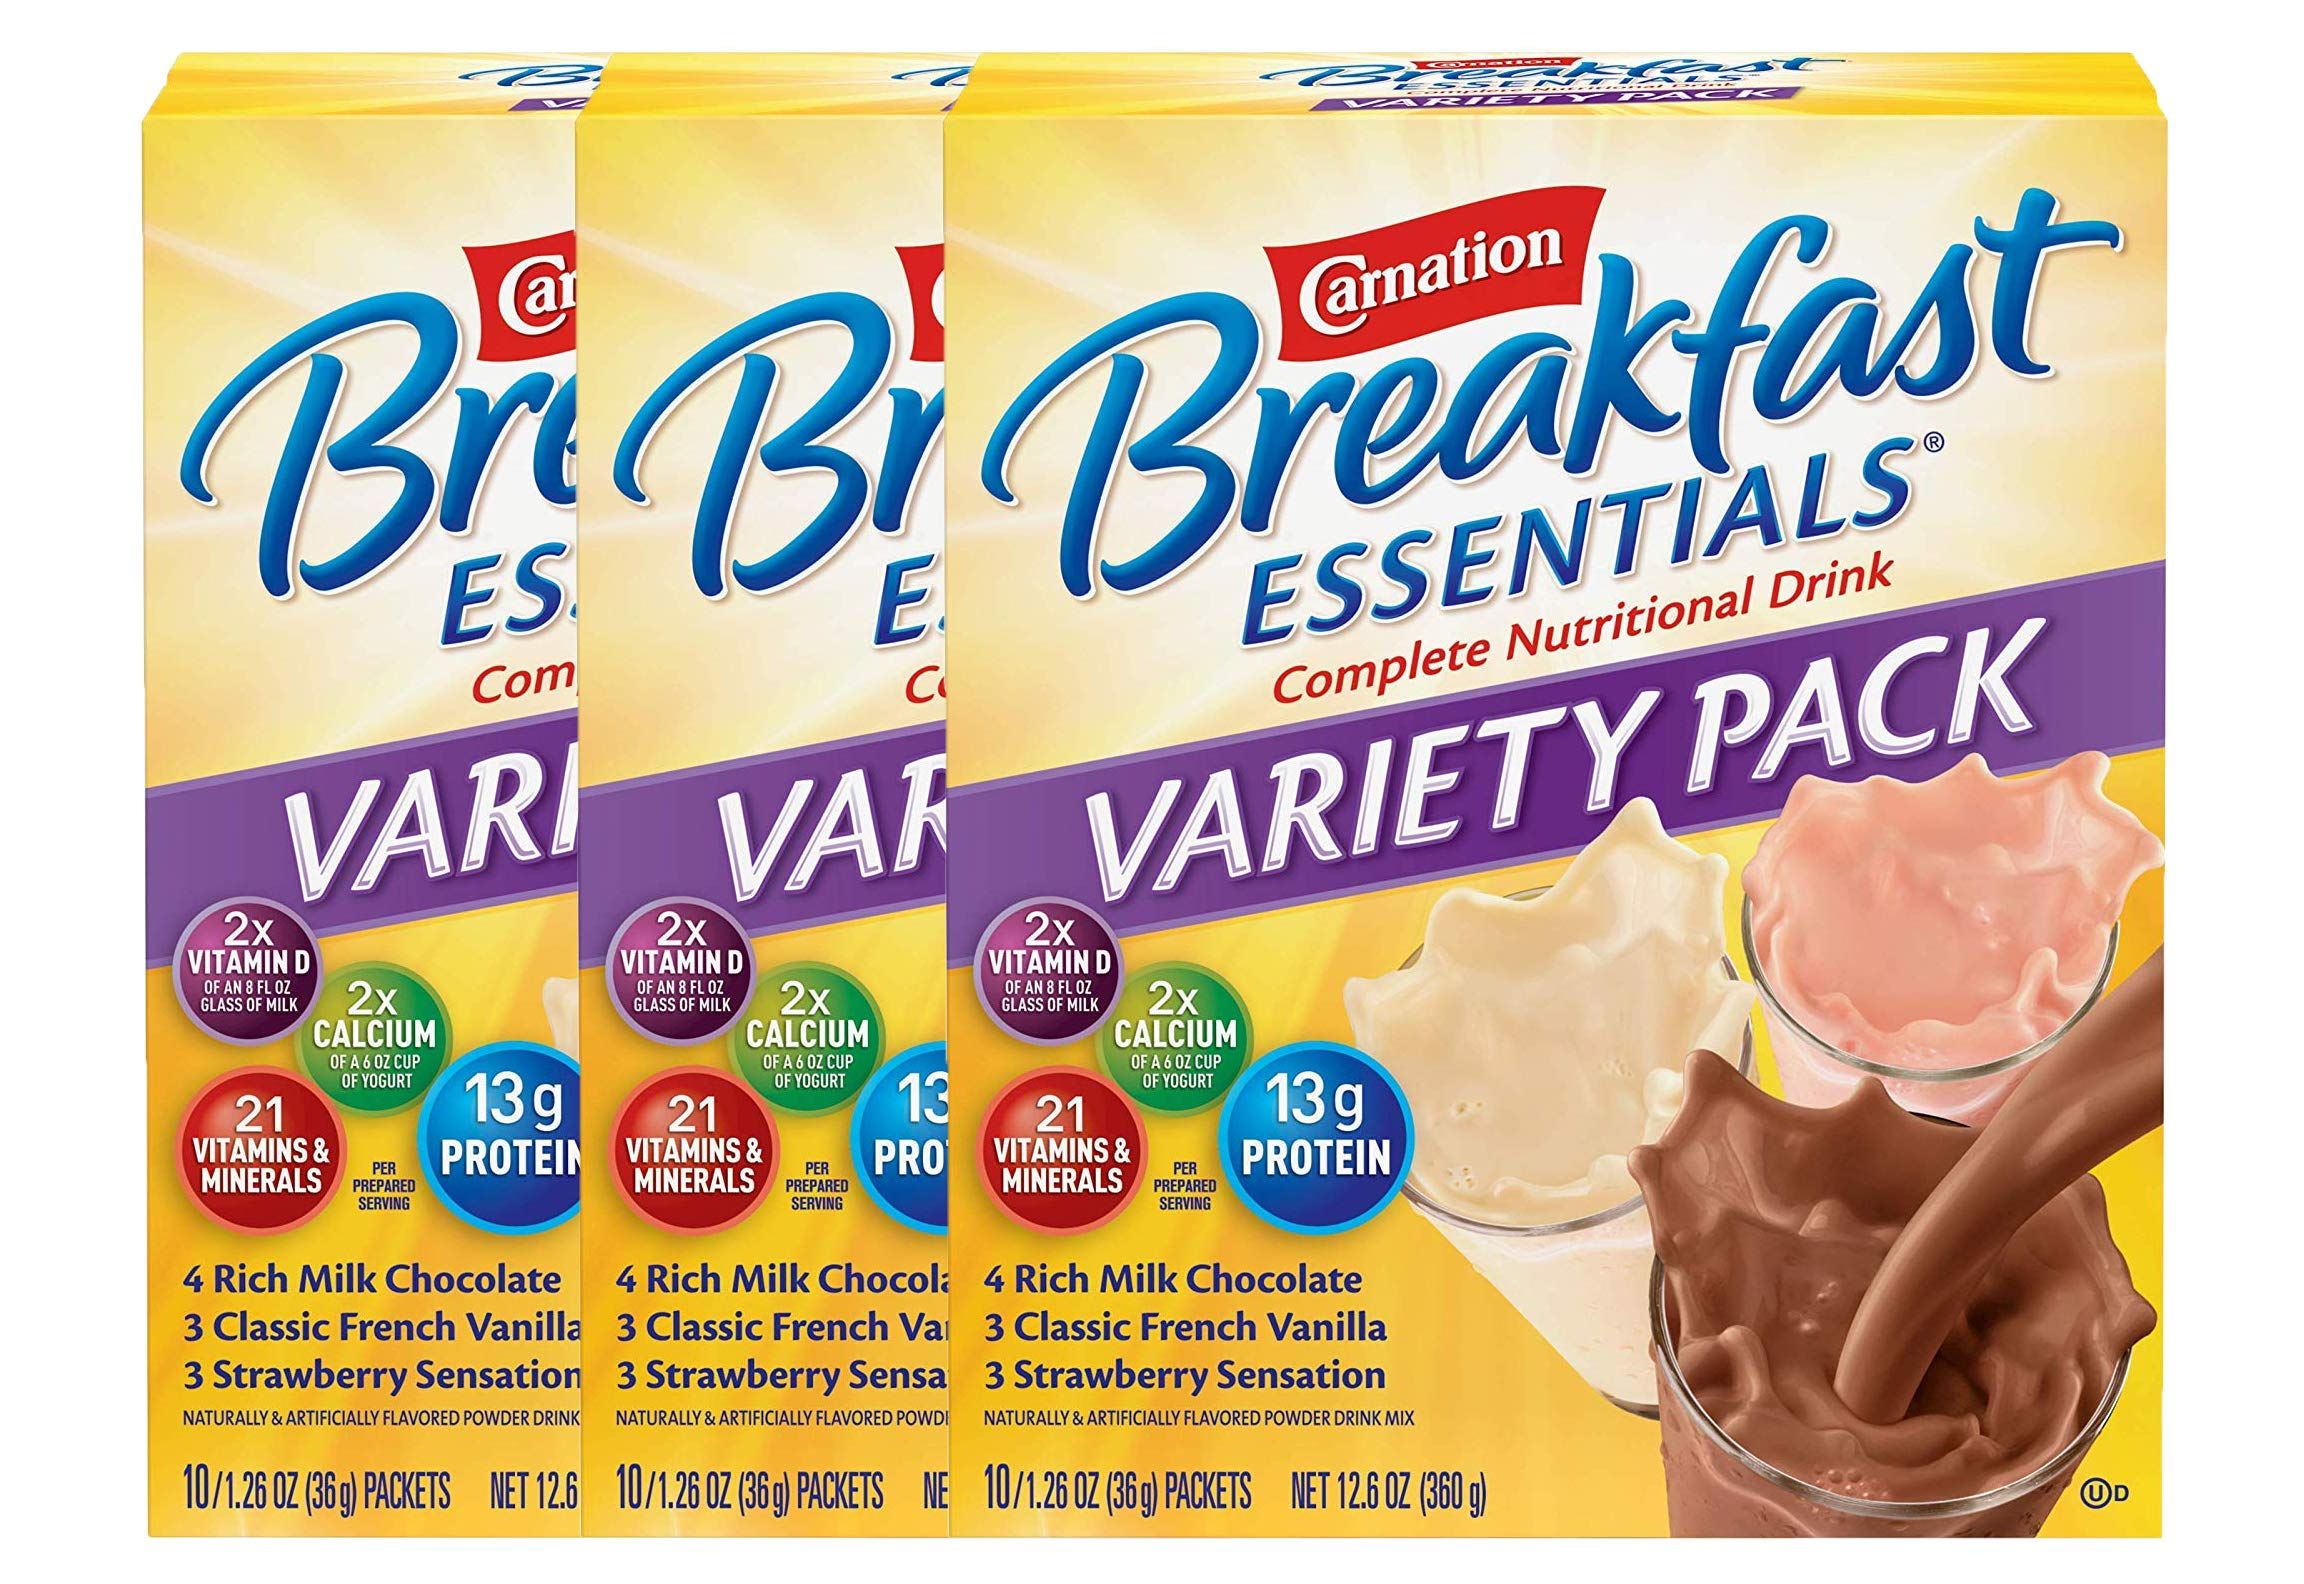 Carnation Breakfast Essentials Powder Drink Mix Variety Pack, Complete Nutritional Drink, 10 Count Box of 1.26 oz Packets (Pack - 3) by Carnation Breakfast Essentials